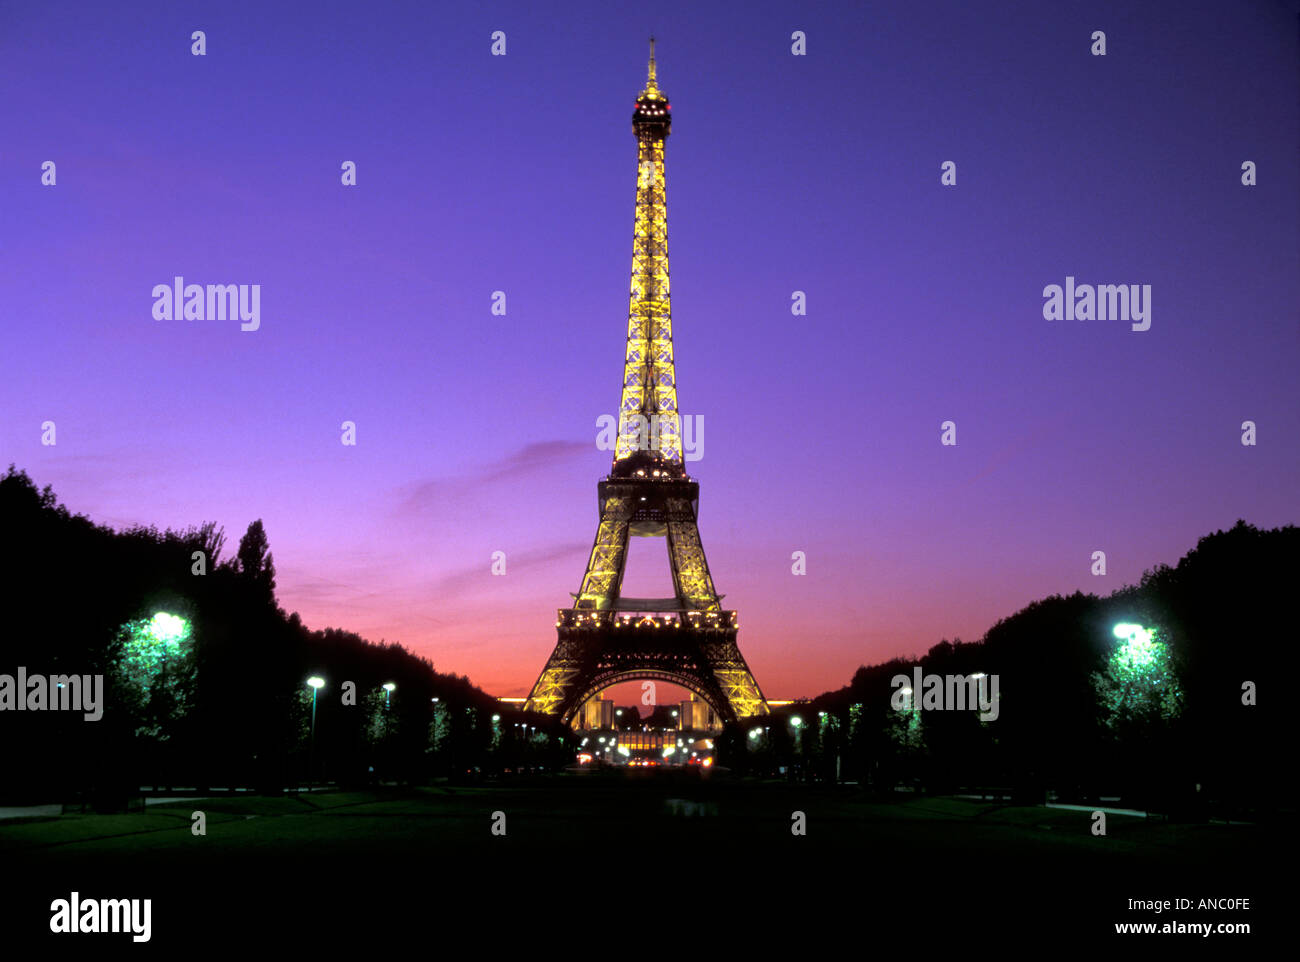 Europe France Paris Eiffel Tower At Sunset From The Champ De Mars Stock Photo Alamy